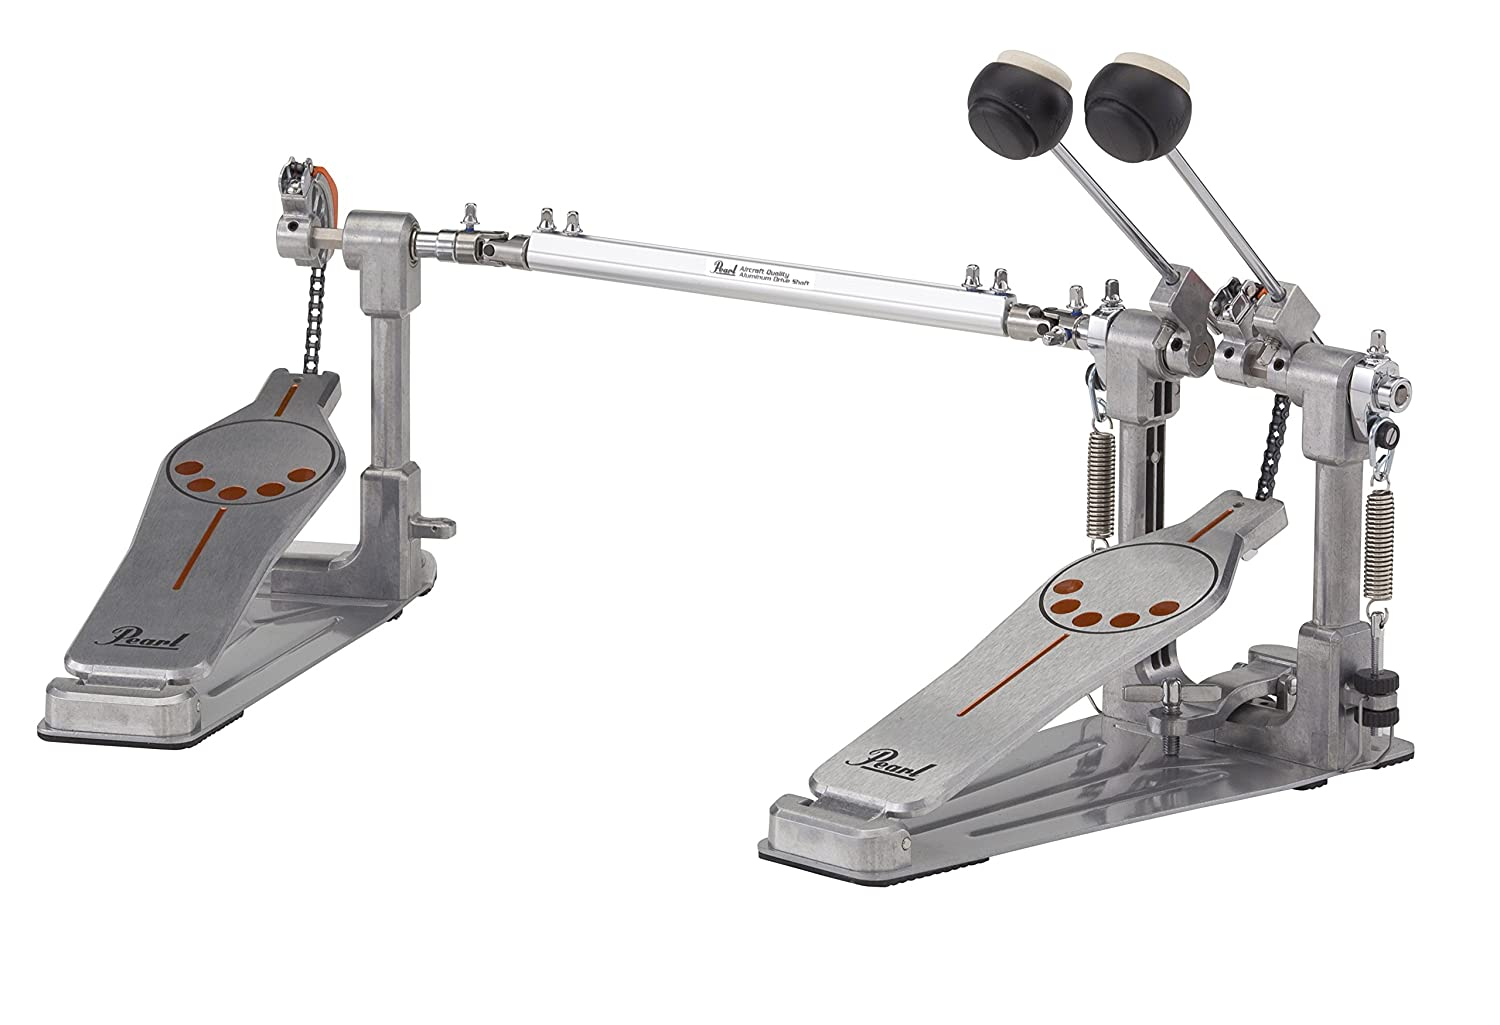 The Best Double Bass Drum Pedal 2